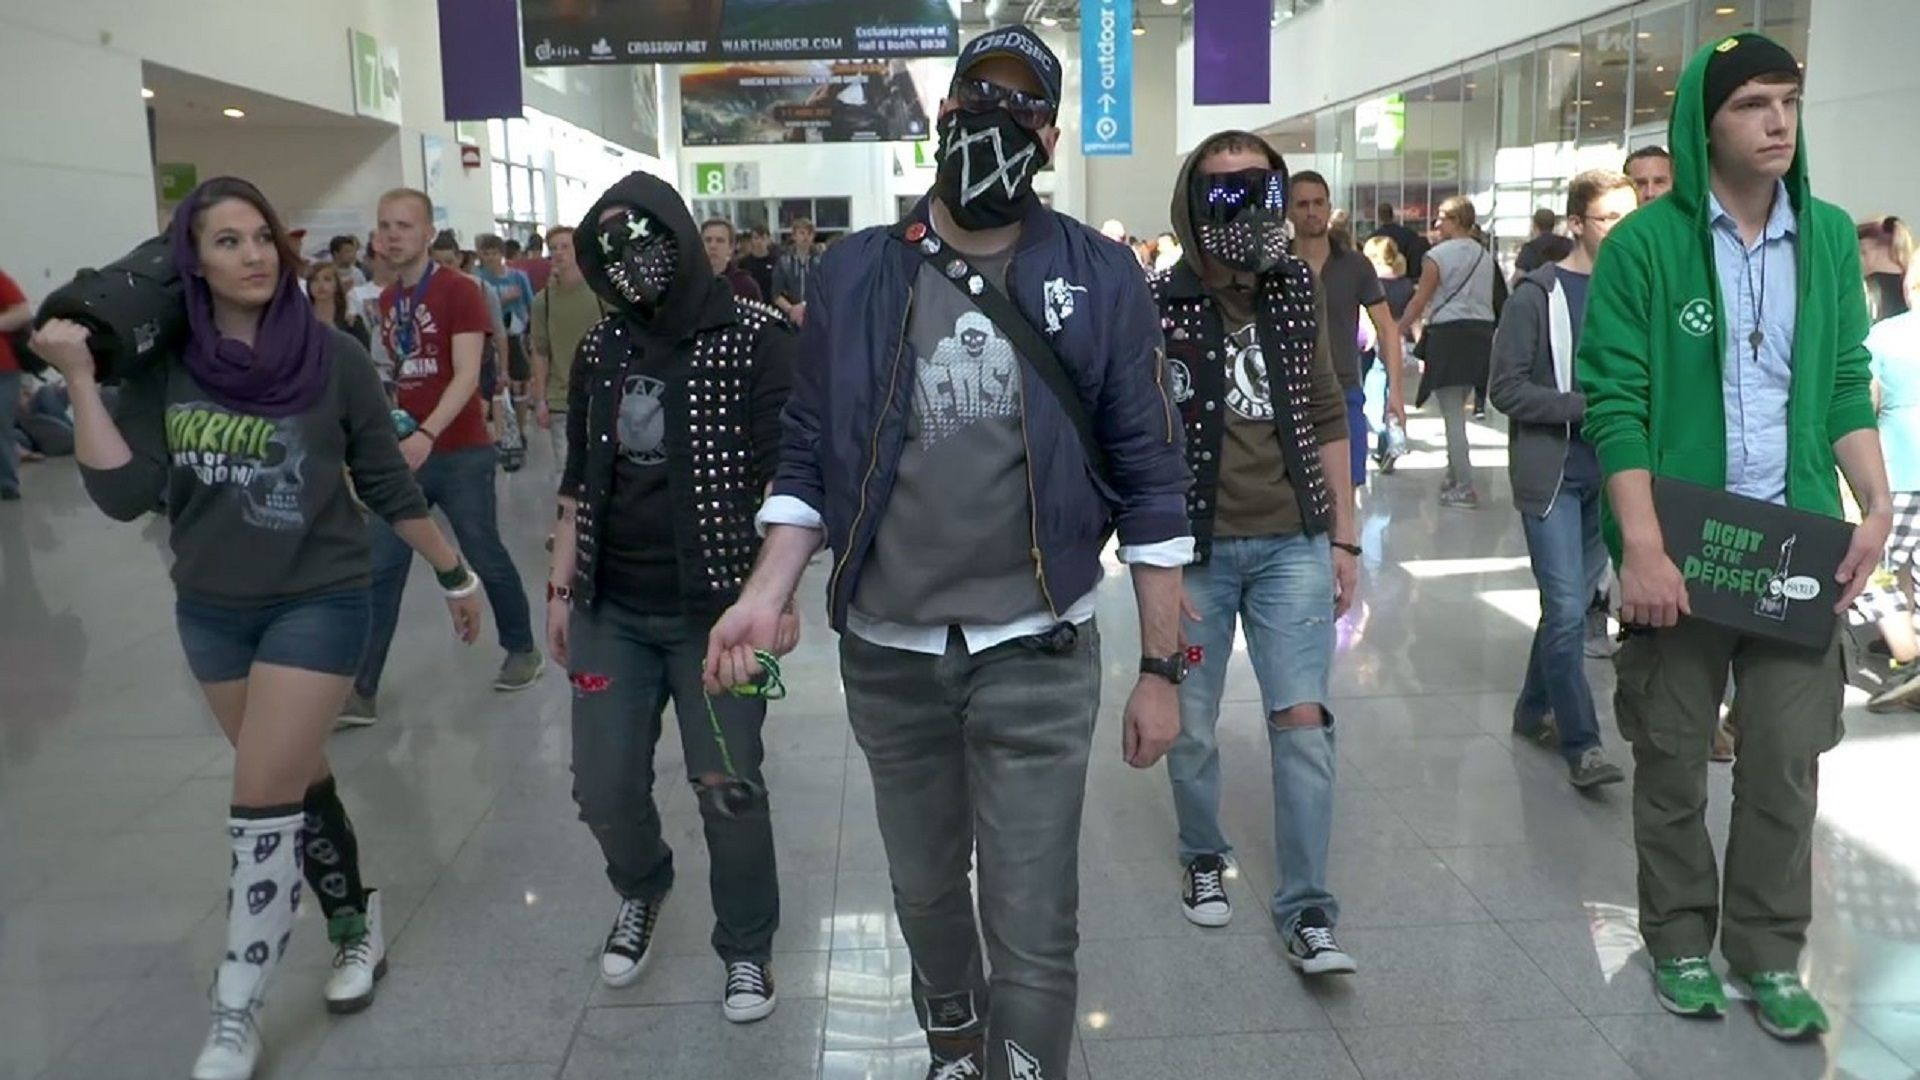 Awesome Watch Dogs 2 Cosplay   Cosplay   Pinterest ...